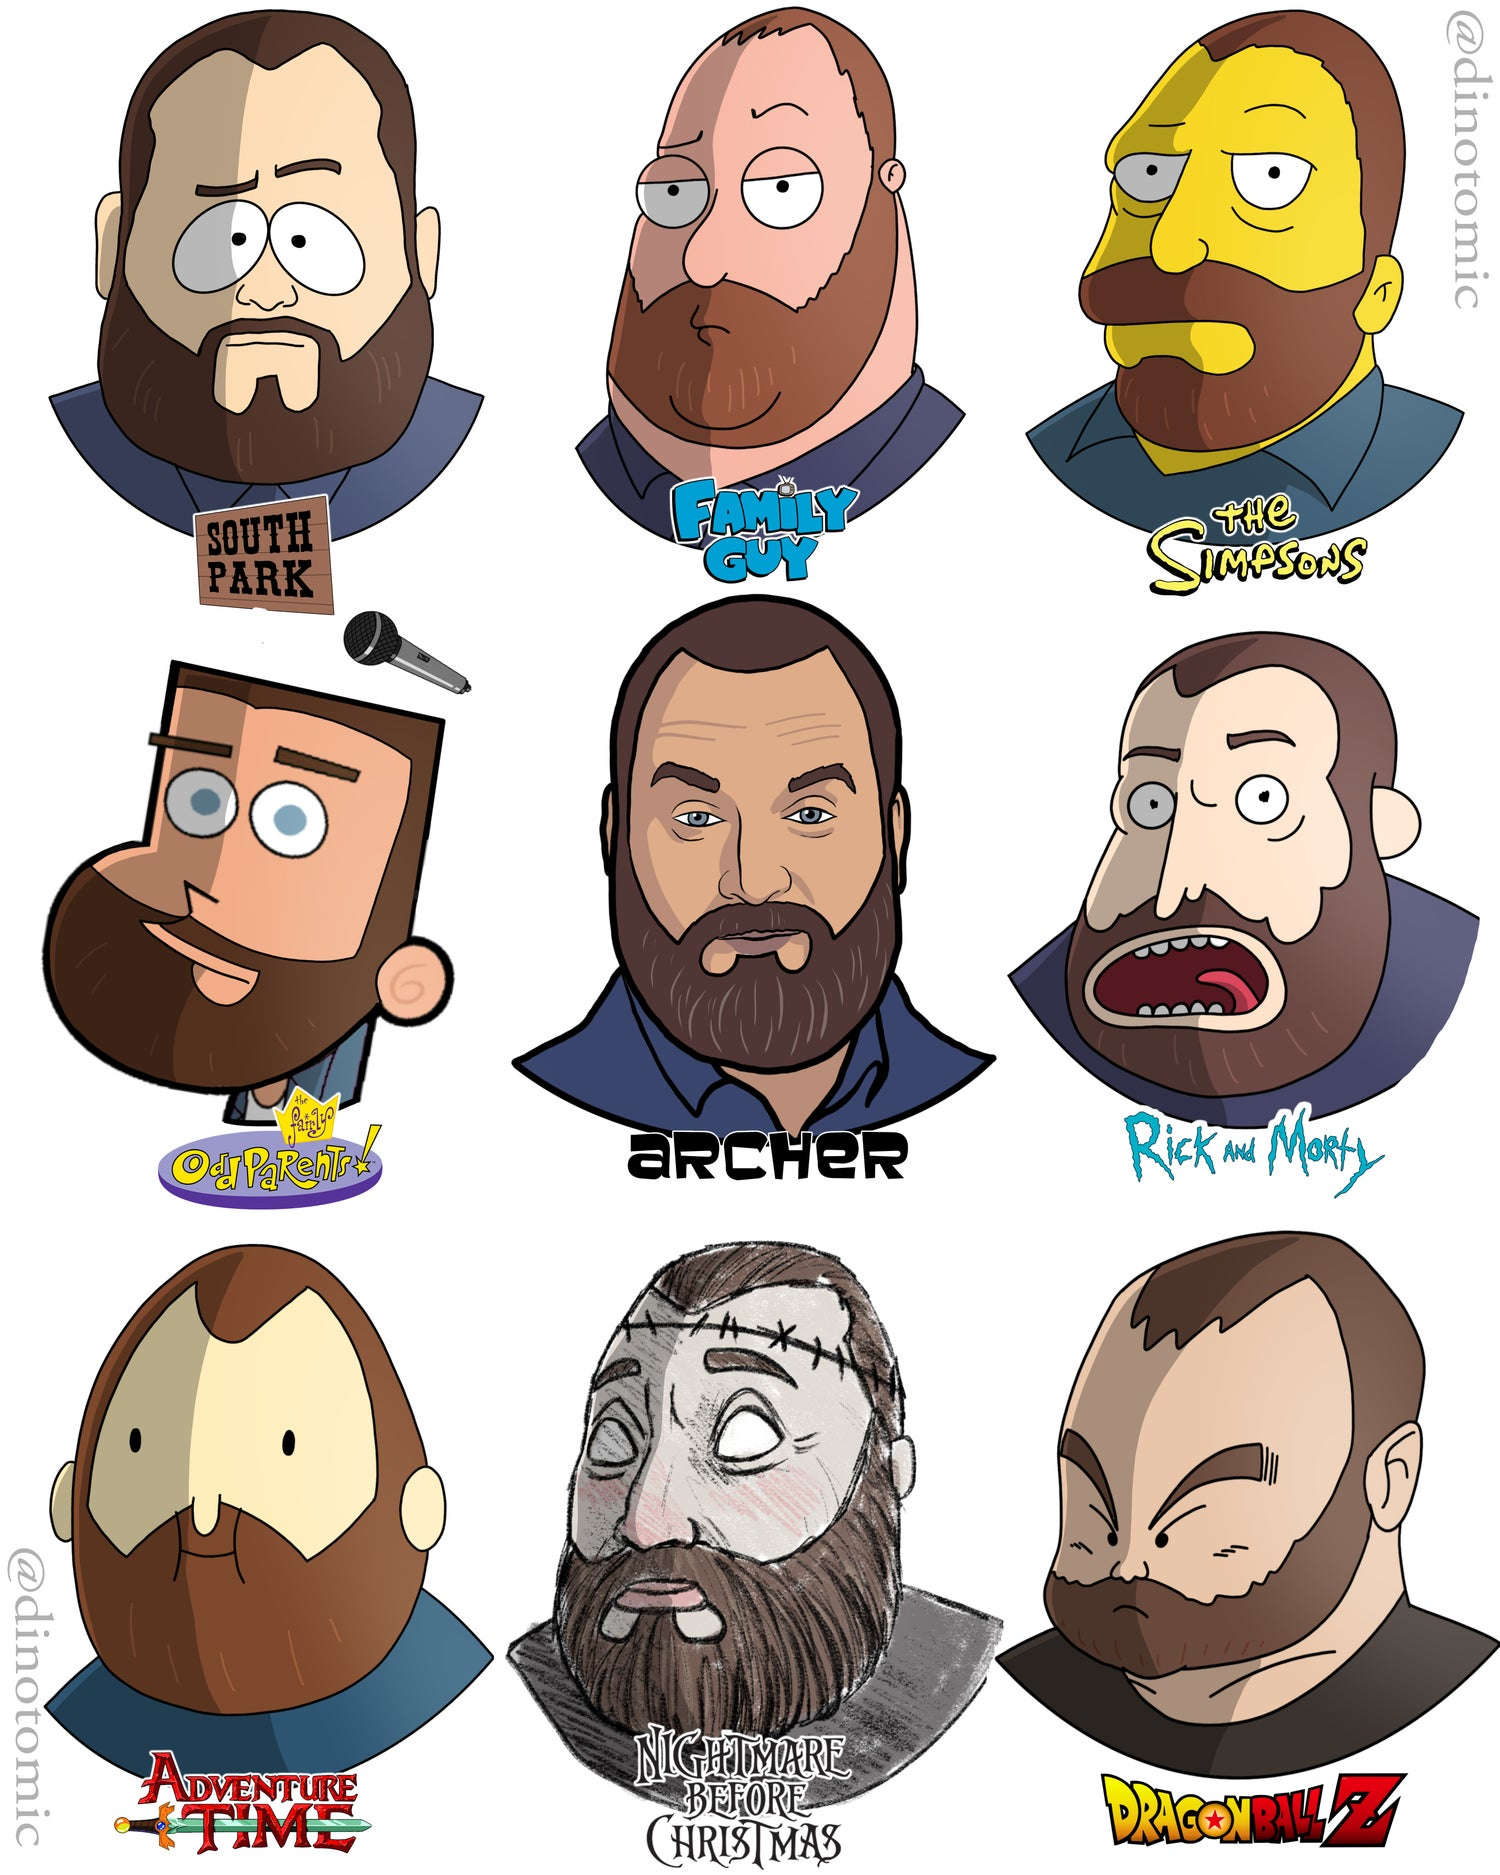 Image of #210 Tom Segura in many different styles